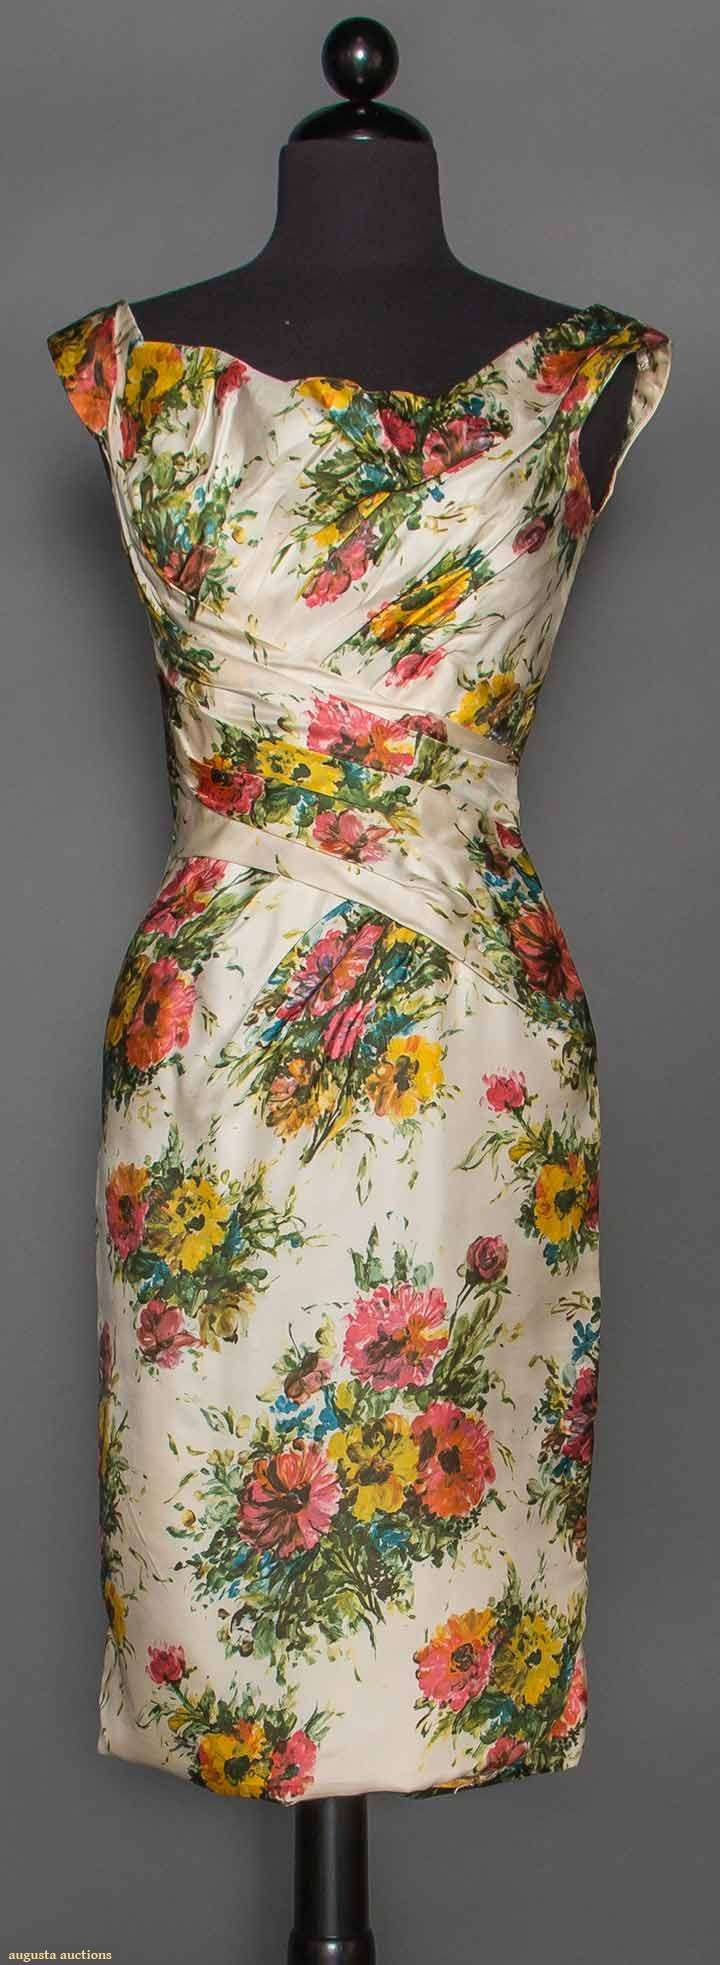 "CEIL CHAPMAN PRINTED DRESS, 1950 White silk twill w/ watercolor effect floral print, ruched midriff & bodice, label ""Ceil Chapman"""